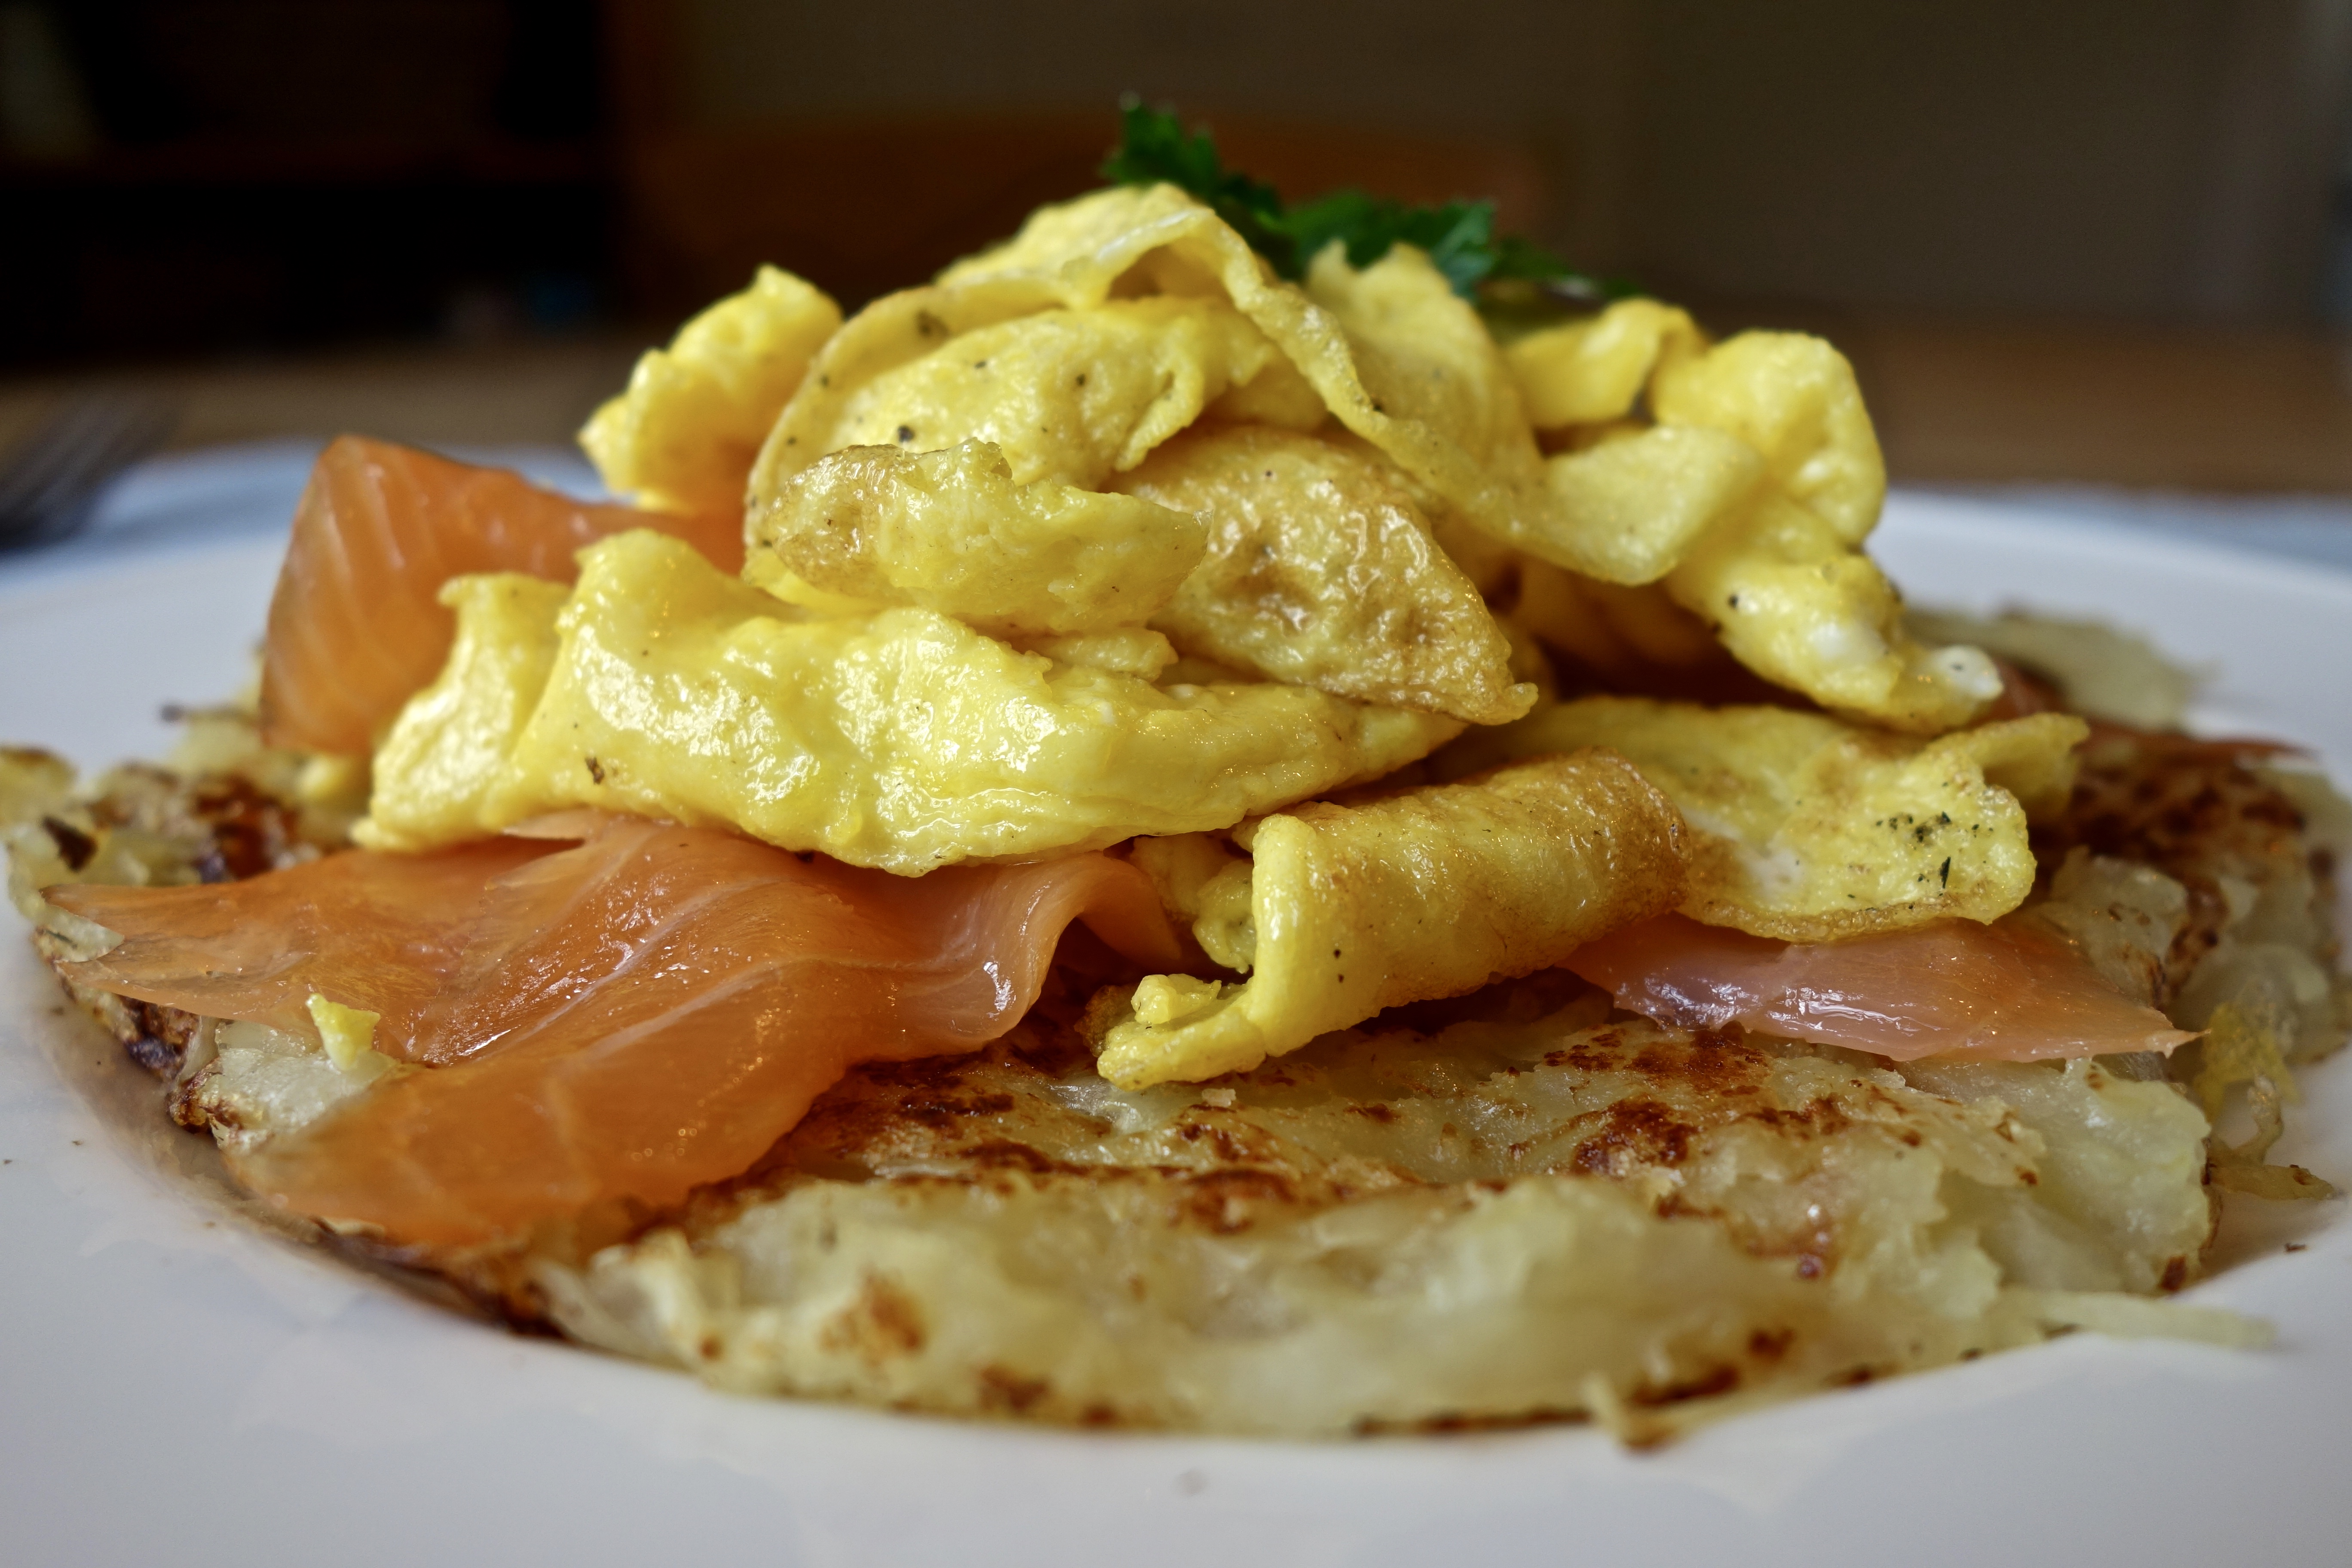 Scrambled Egg and Smoked Salmon Rosti for brunch